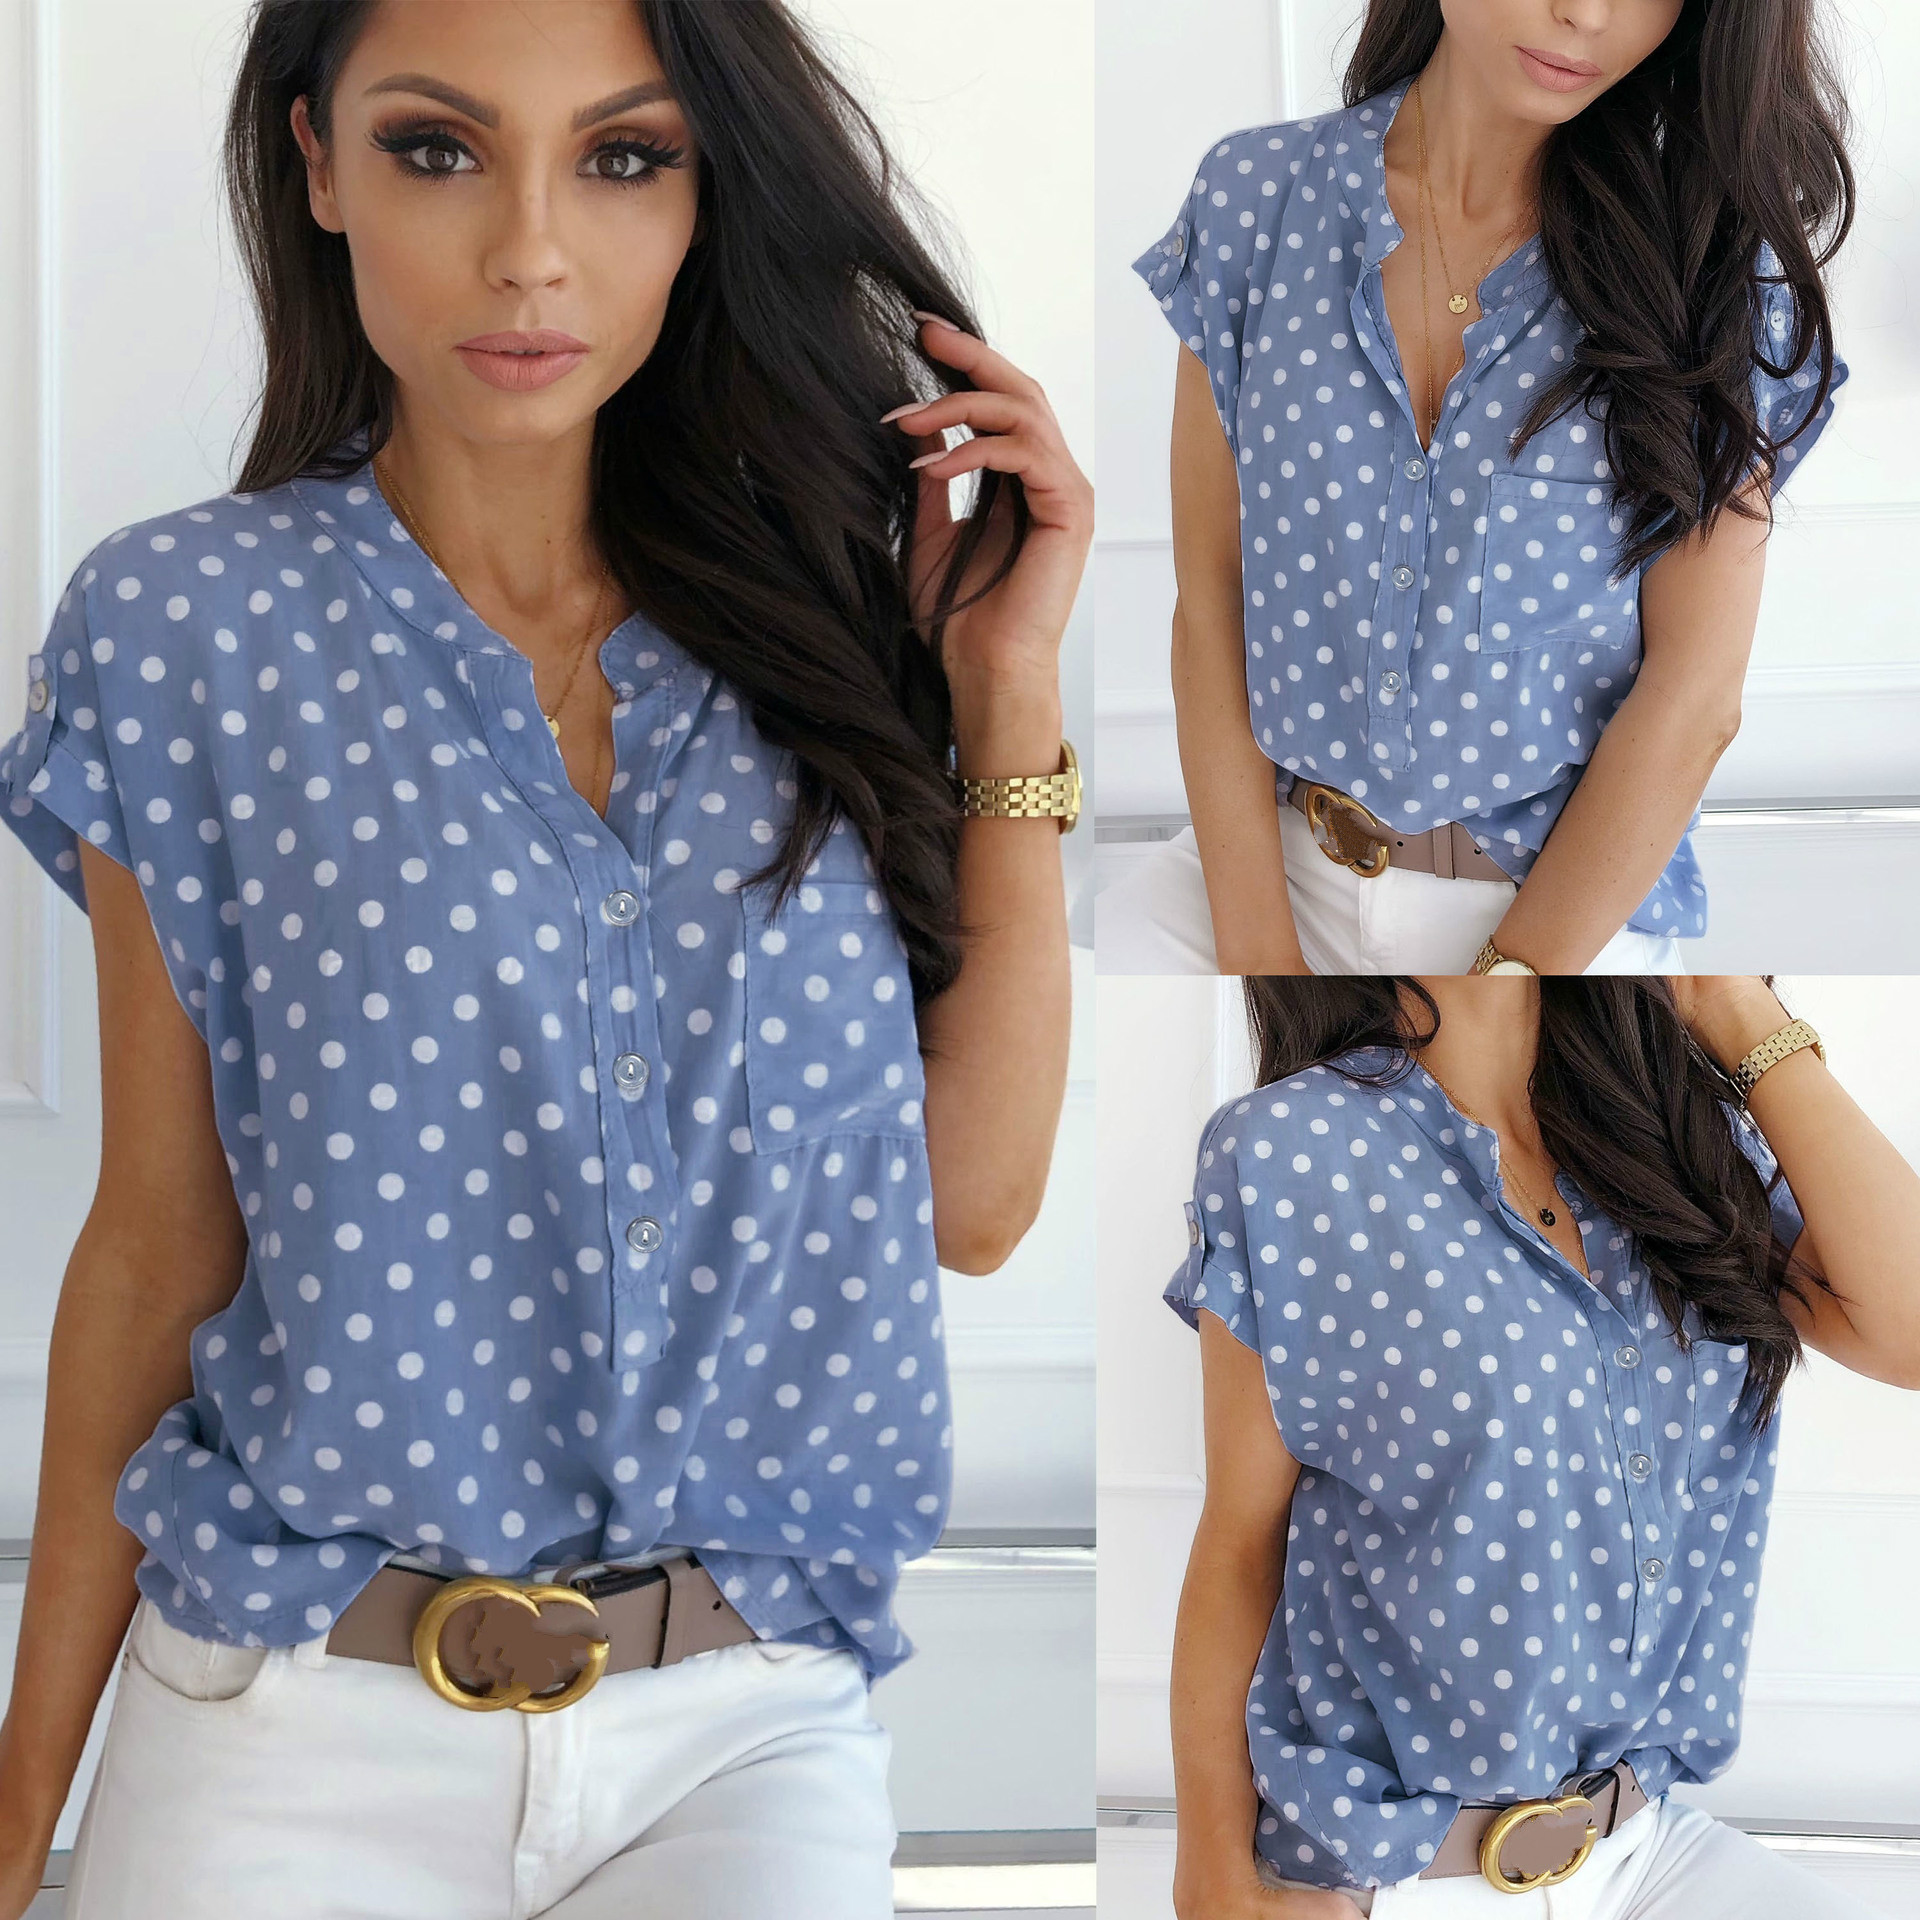 2019 Summer Women   Shirt   Polka Dot Blue V Neck Chiffon Short Sleeve Women Tops Women   Blouse   Summer Tops